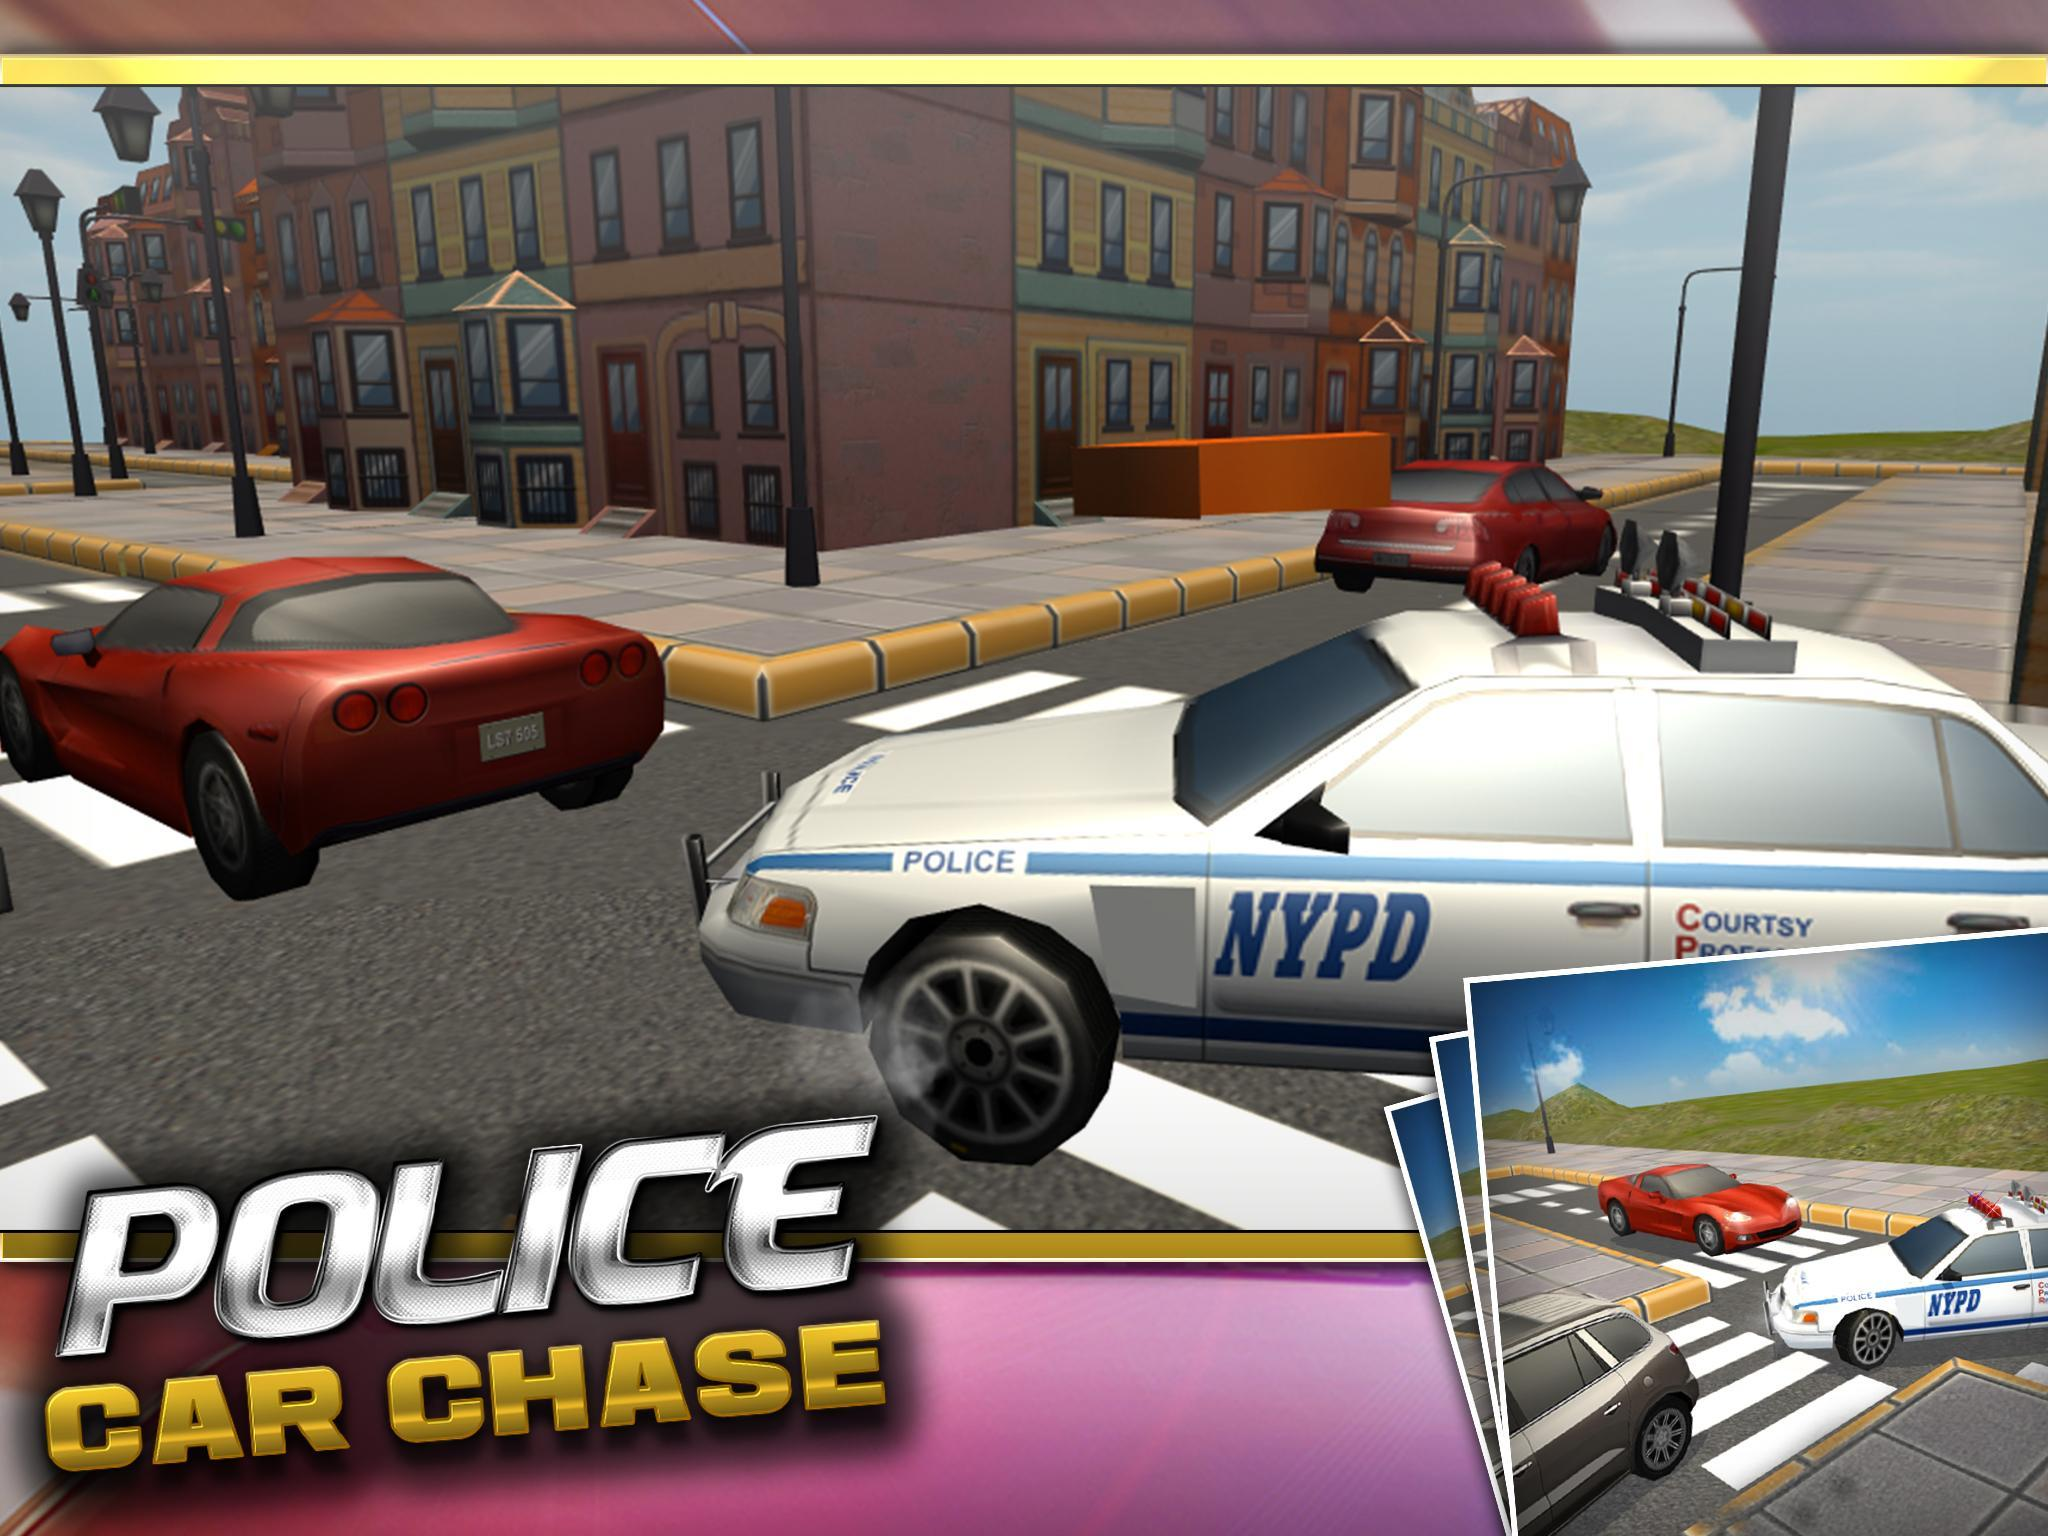 Police Car Chase 3D for Android - APK Download